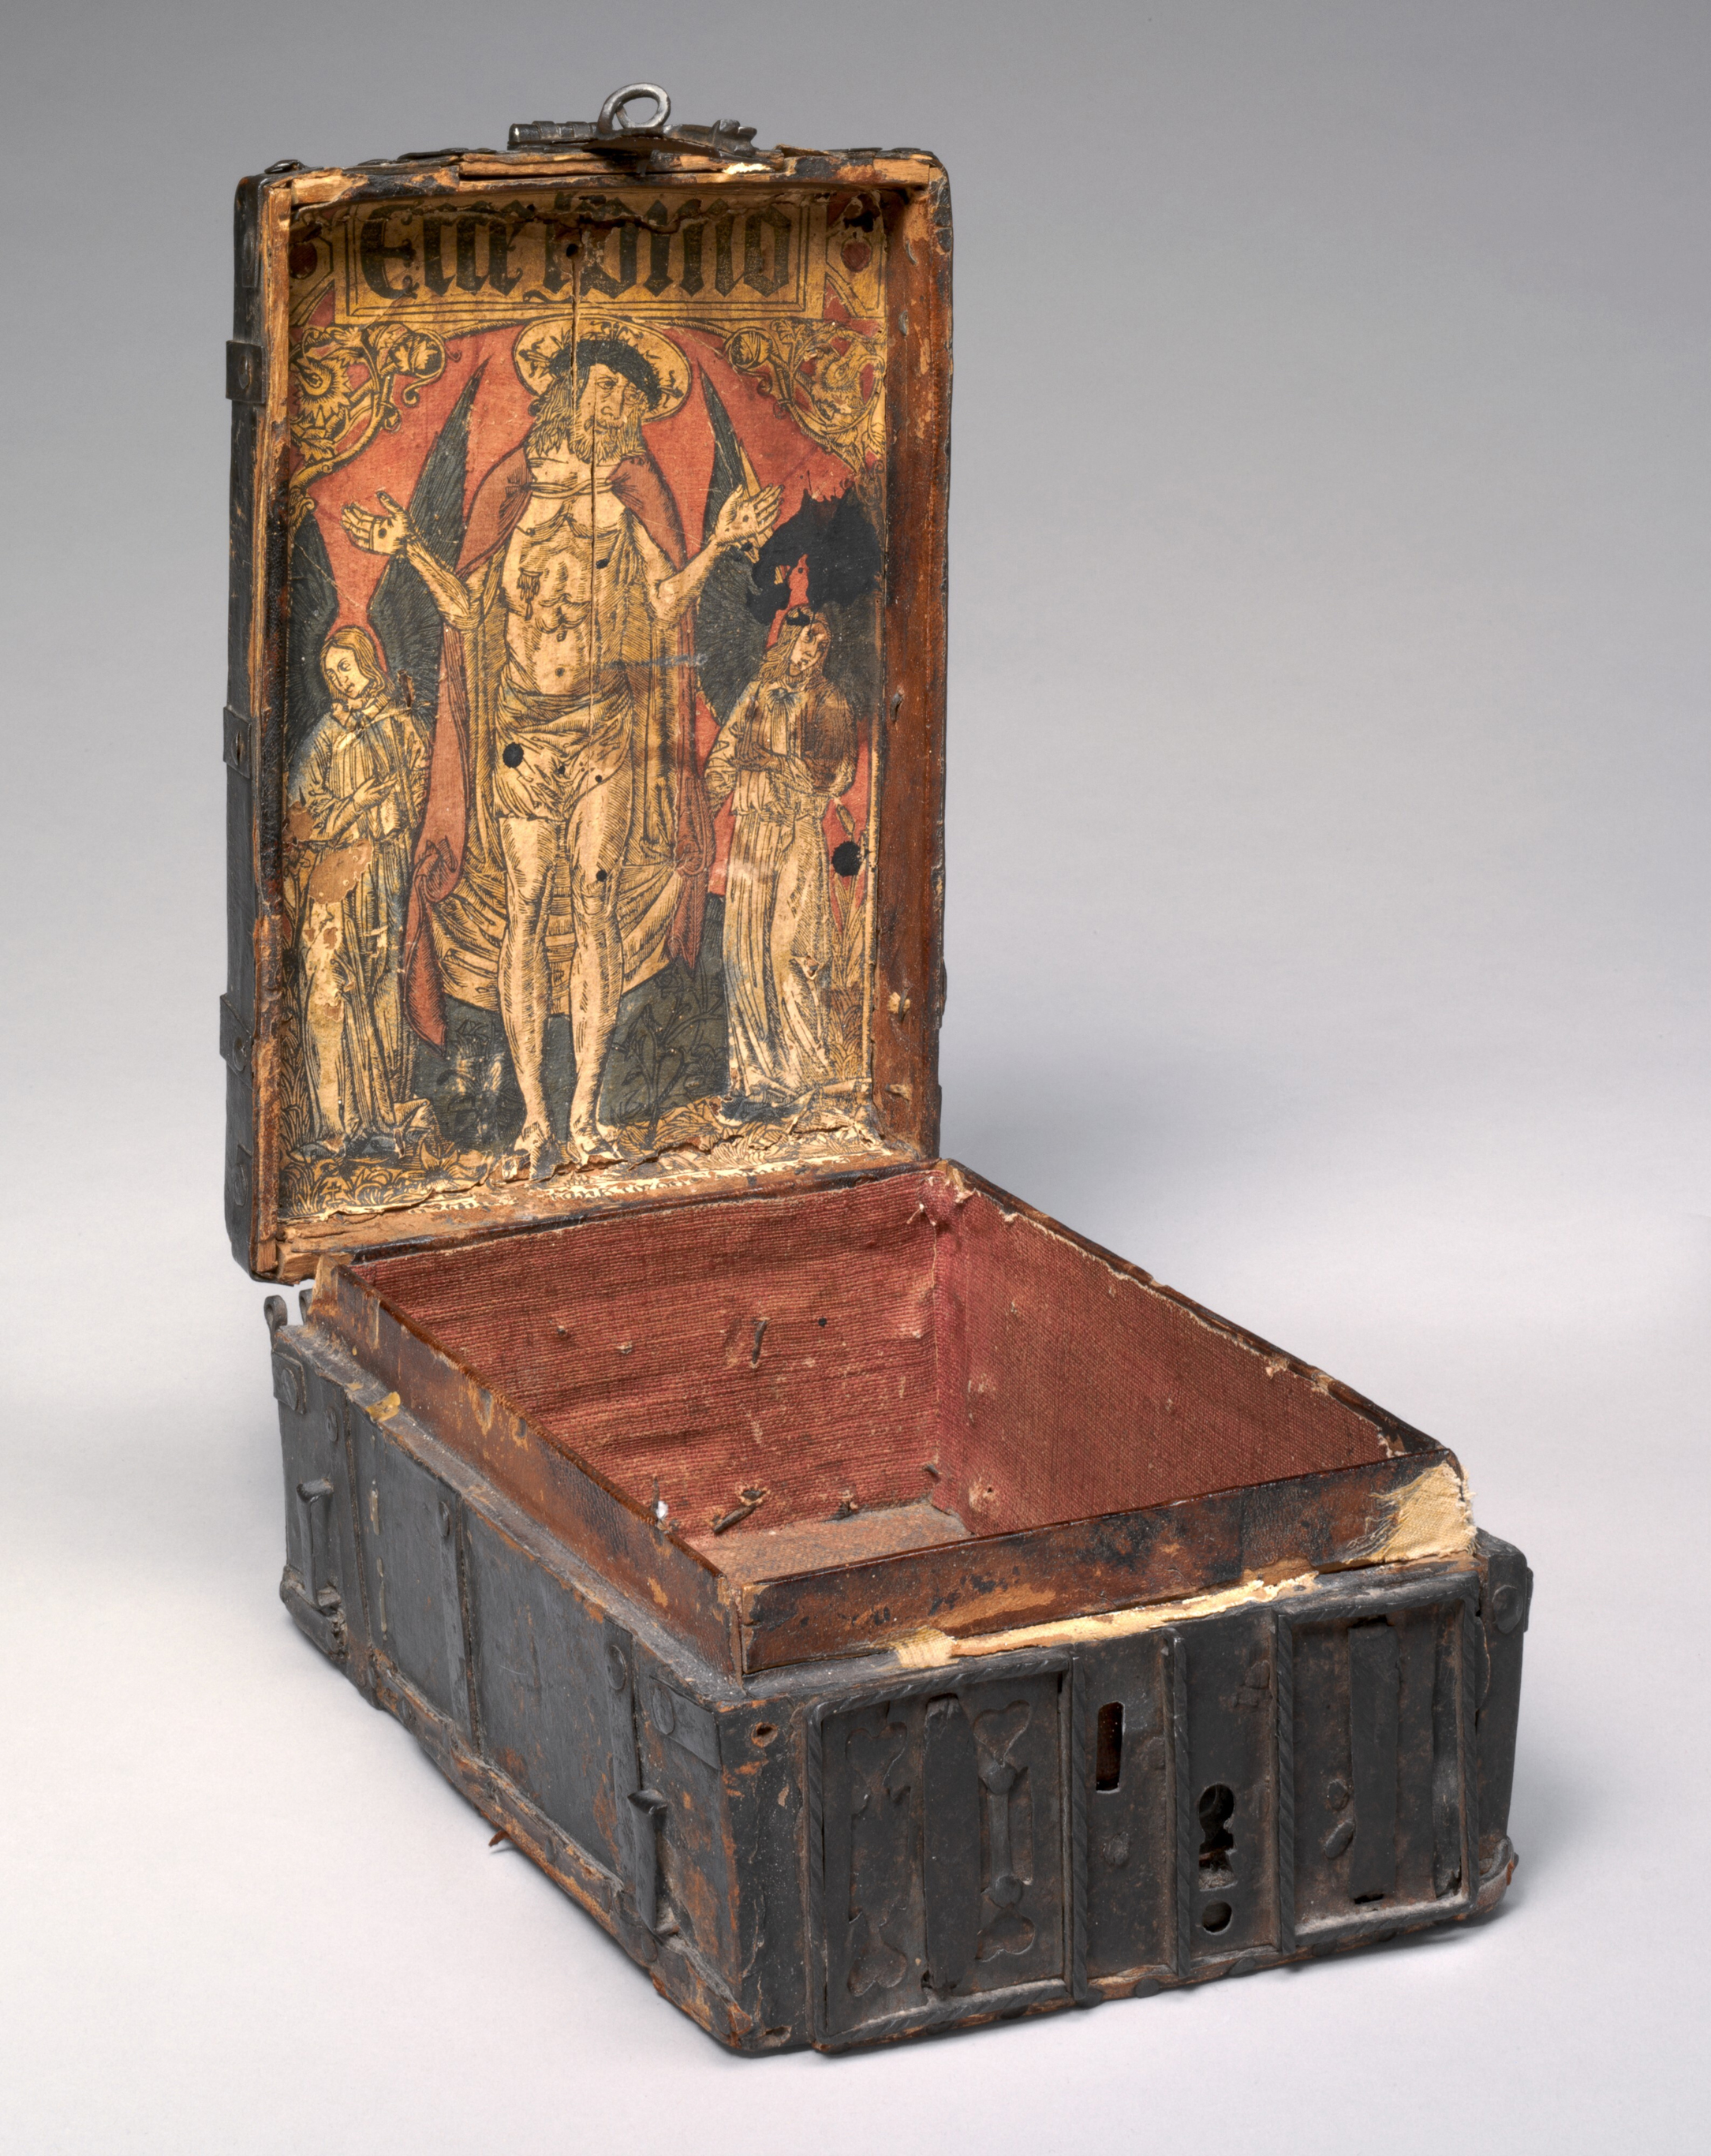 12 French cofferet with woodcut of Christ as the Man of Sorrows c1500 NGA Washington1952.8.7